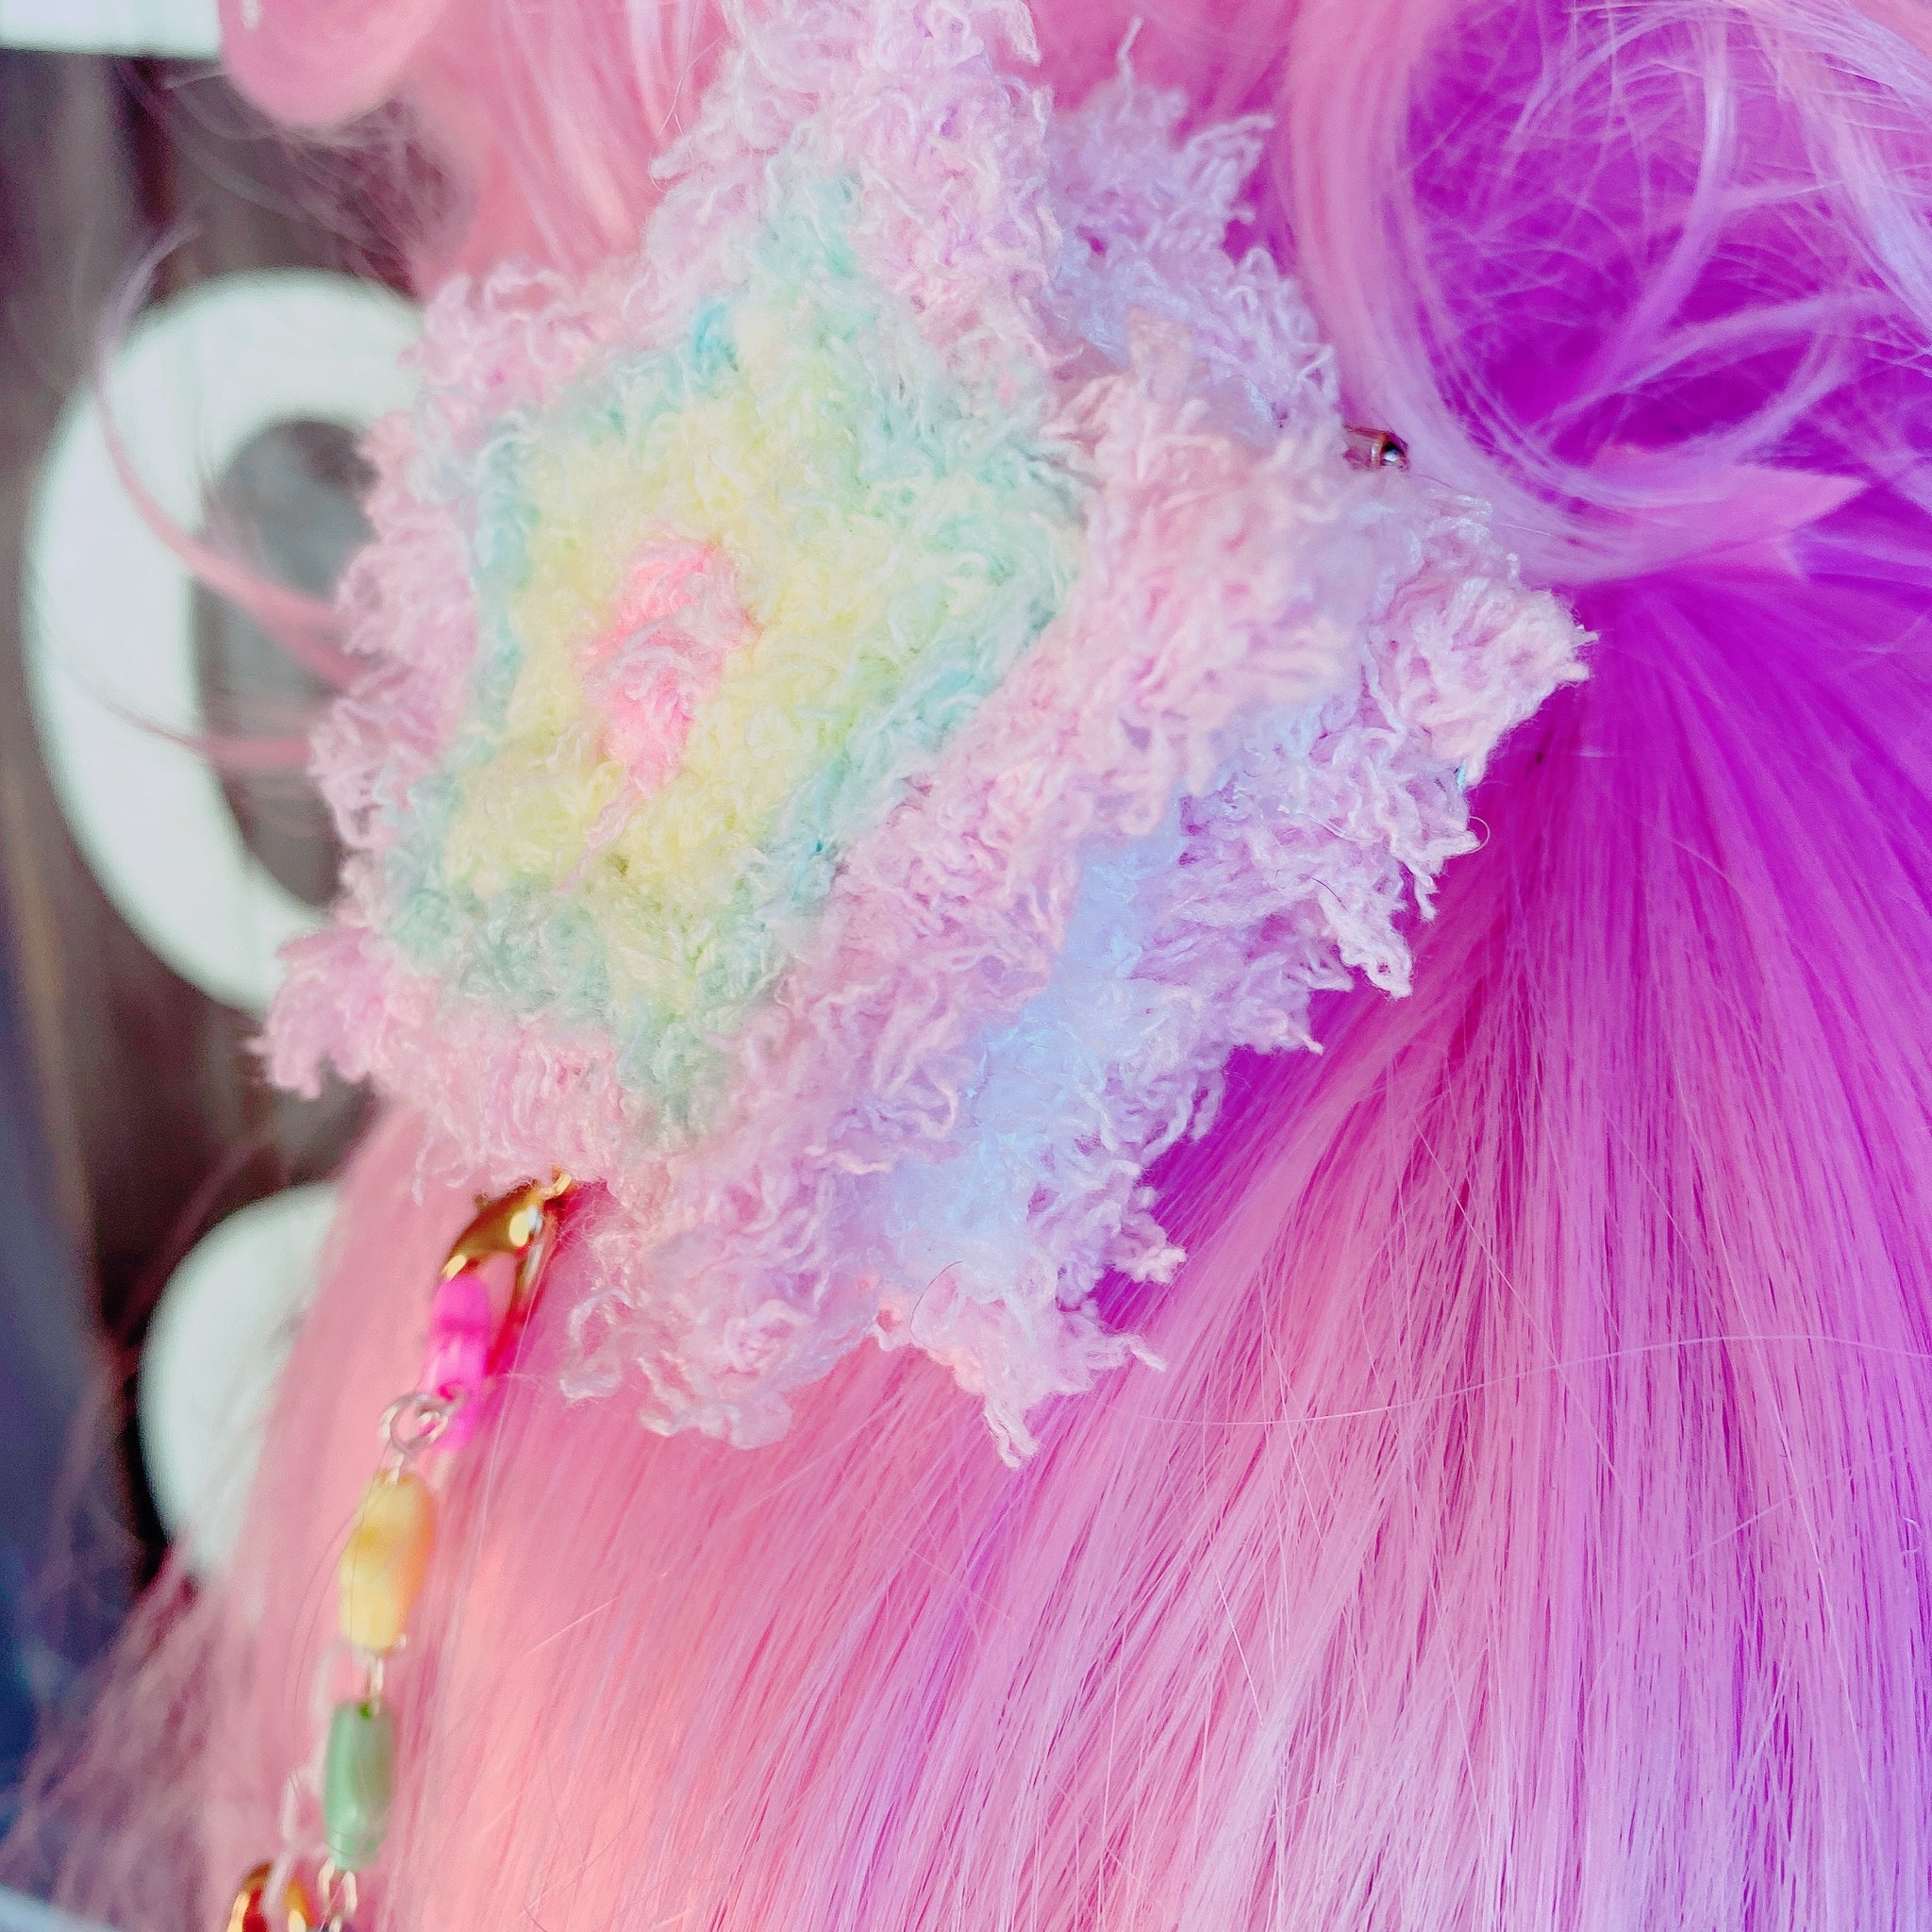 Rainbow Fuzzy Macaroon Star Dangle 2 Way Hair Clip Double Macaron